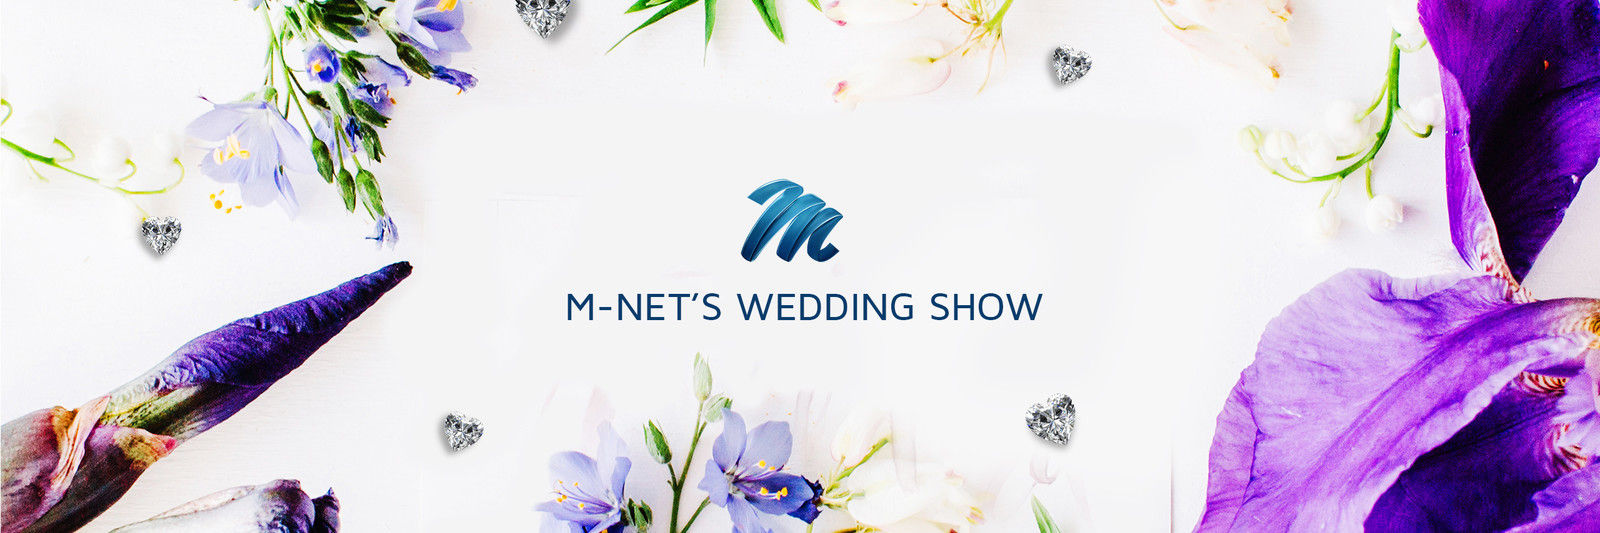 27 m nets wedding show billboard 005 pre